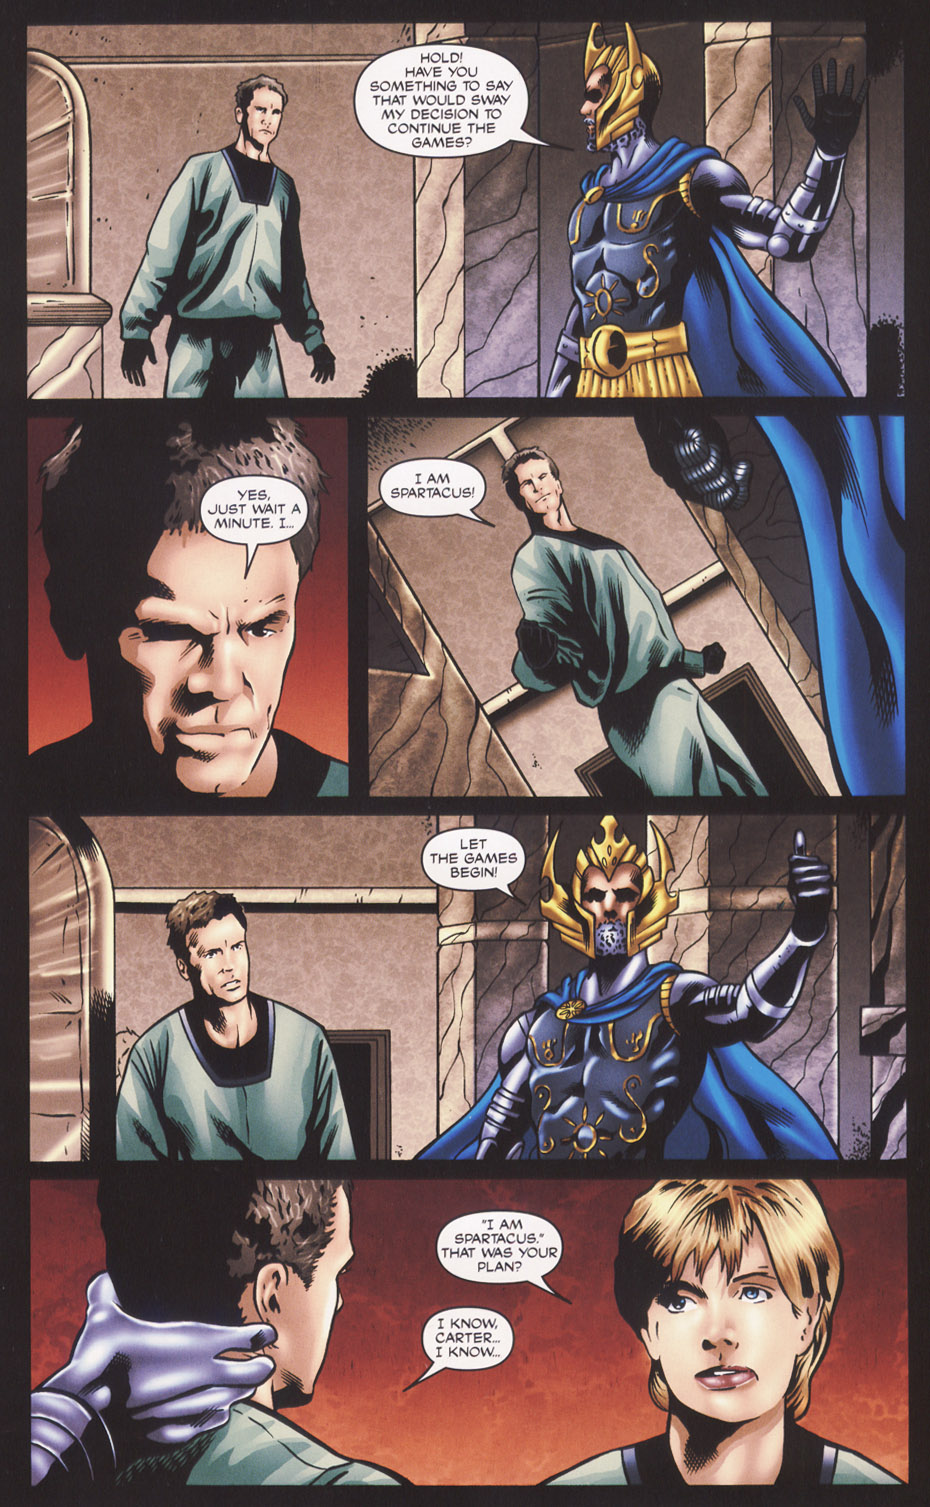 Read online Stargate SG-1: Fall of Rome comic -  Issue #2 - 23